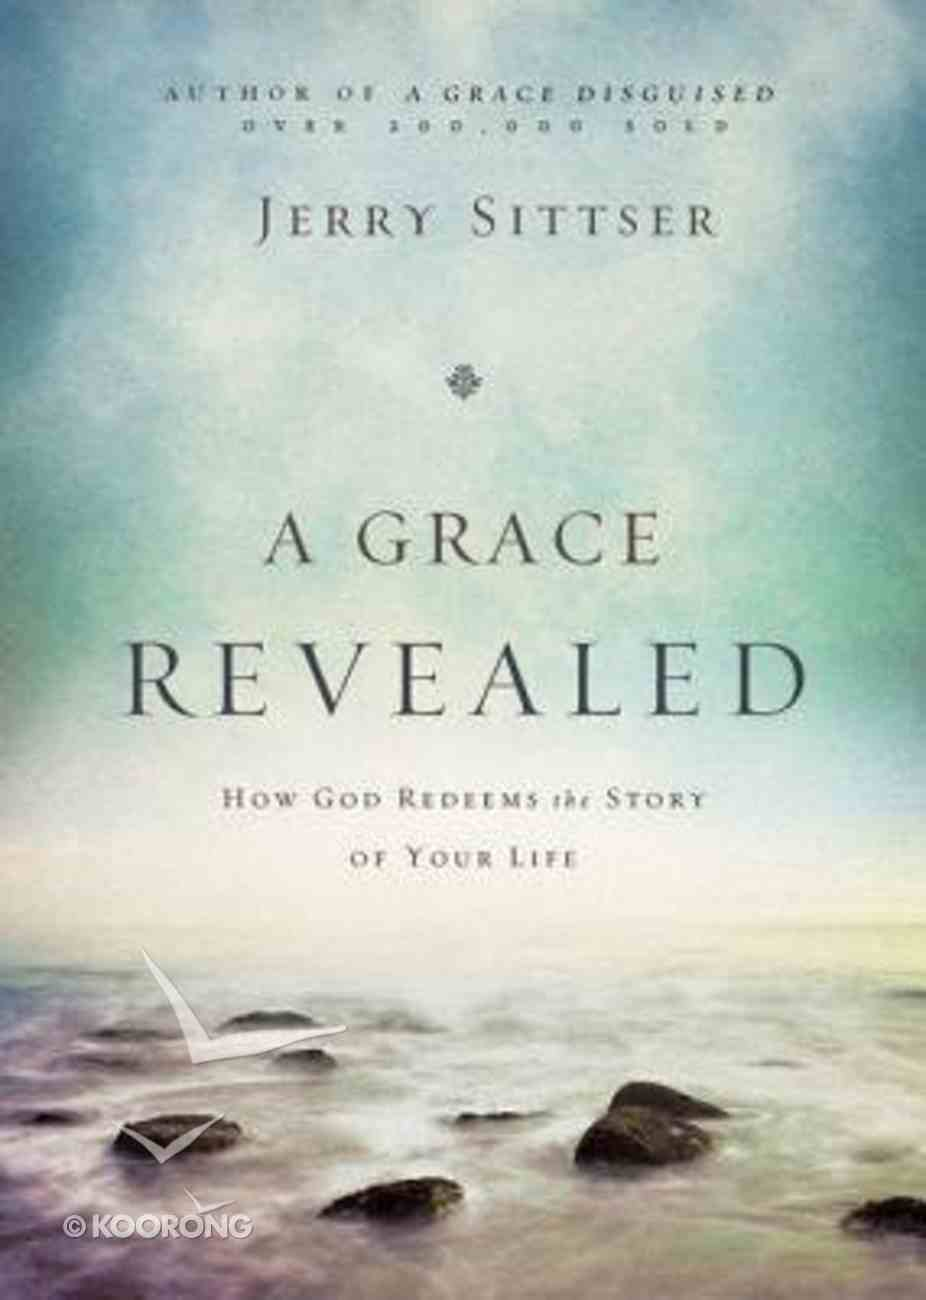 A Grace Revealed: How God Redeems the Story of Your Life Hardback